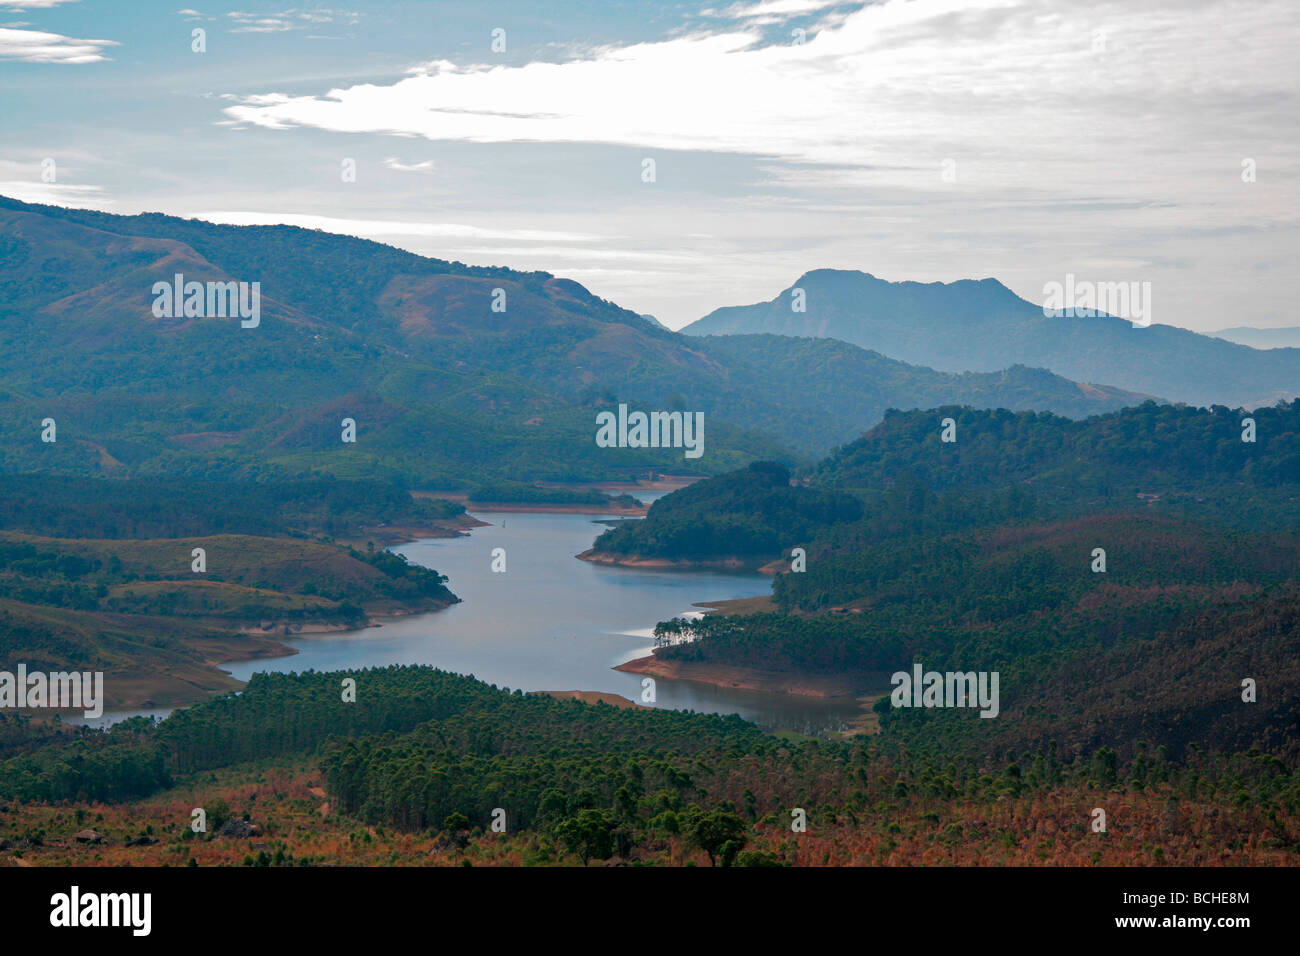 Western Ghats of India - Stock Image